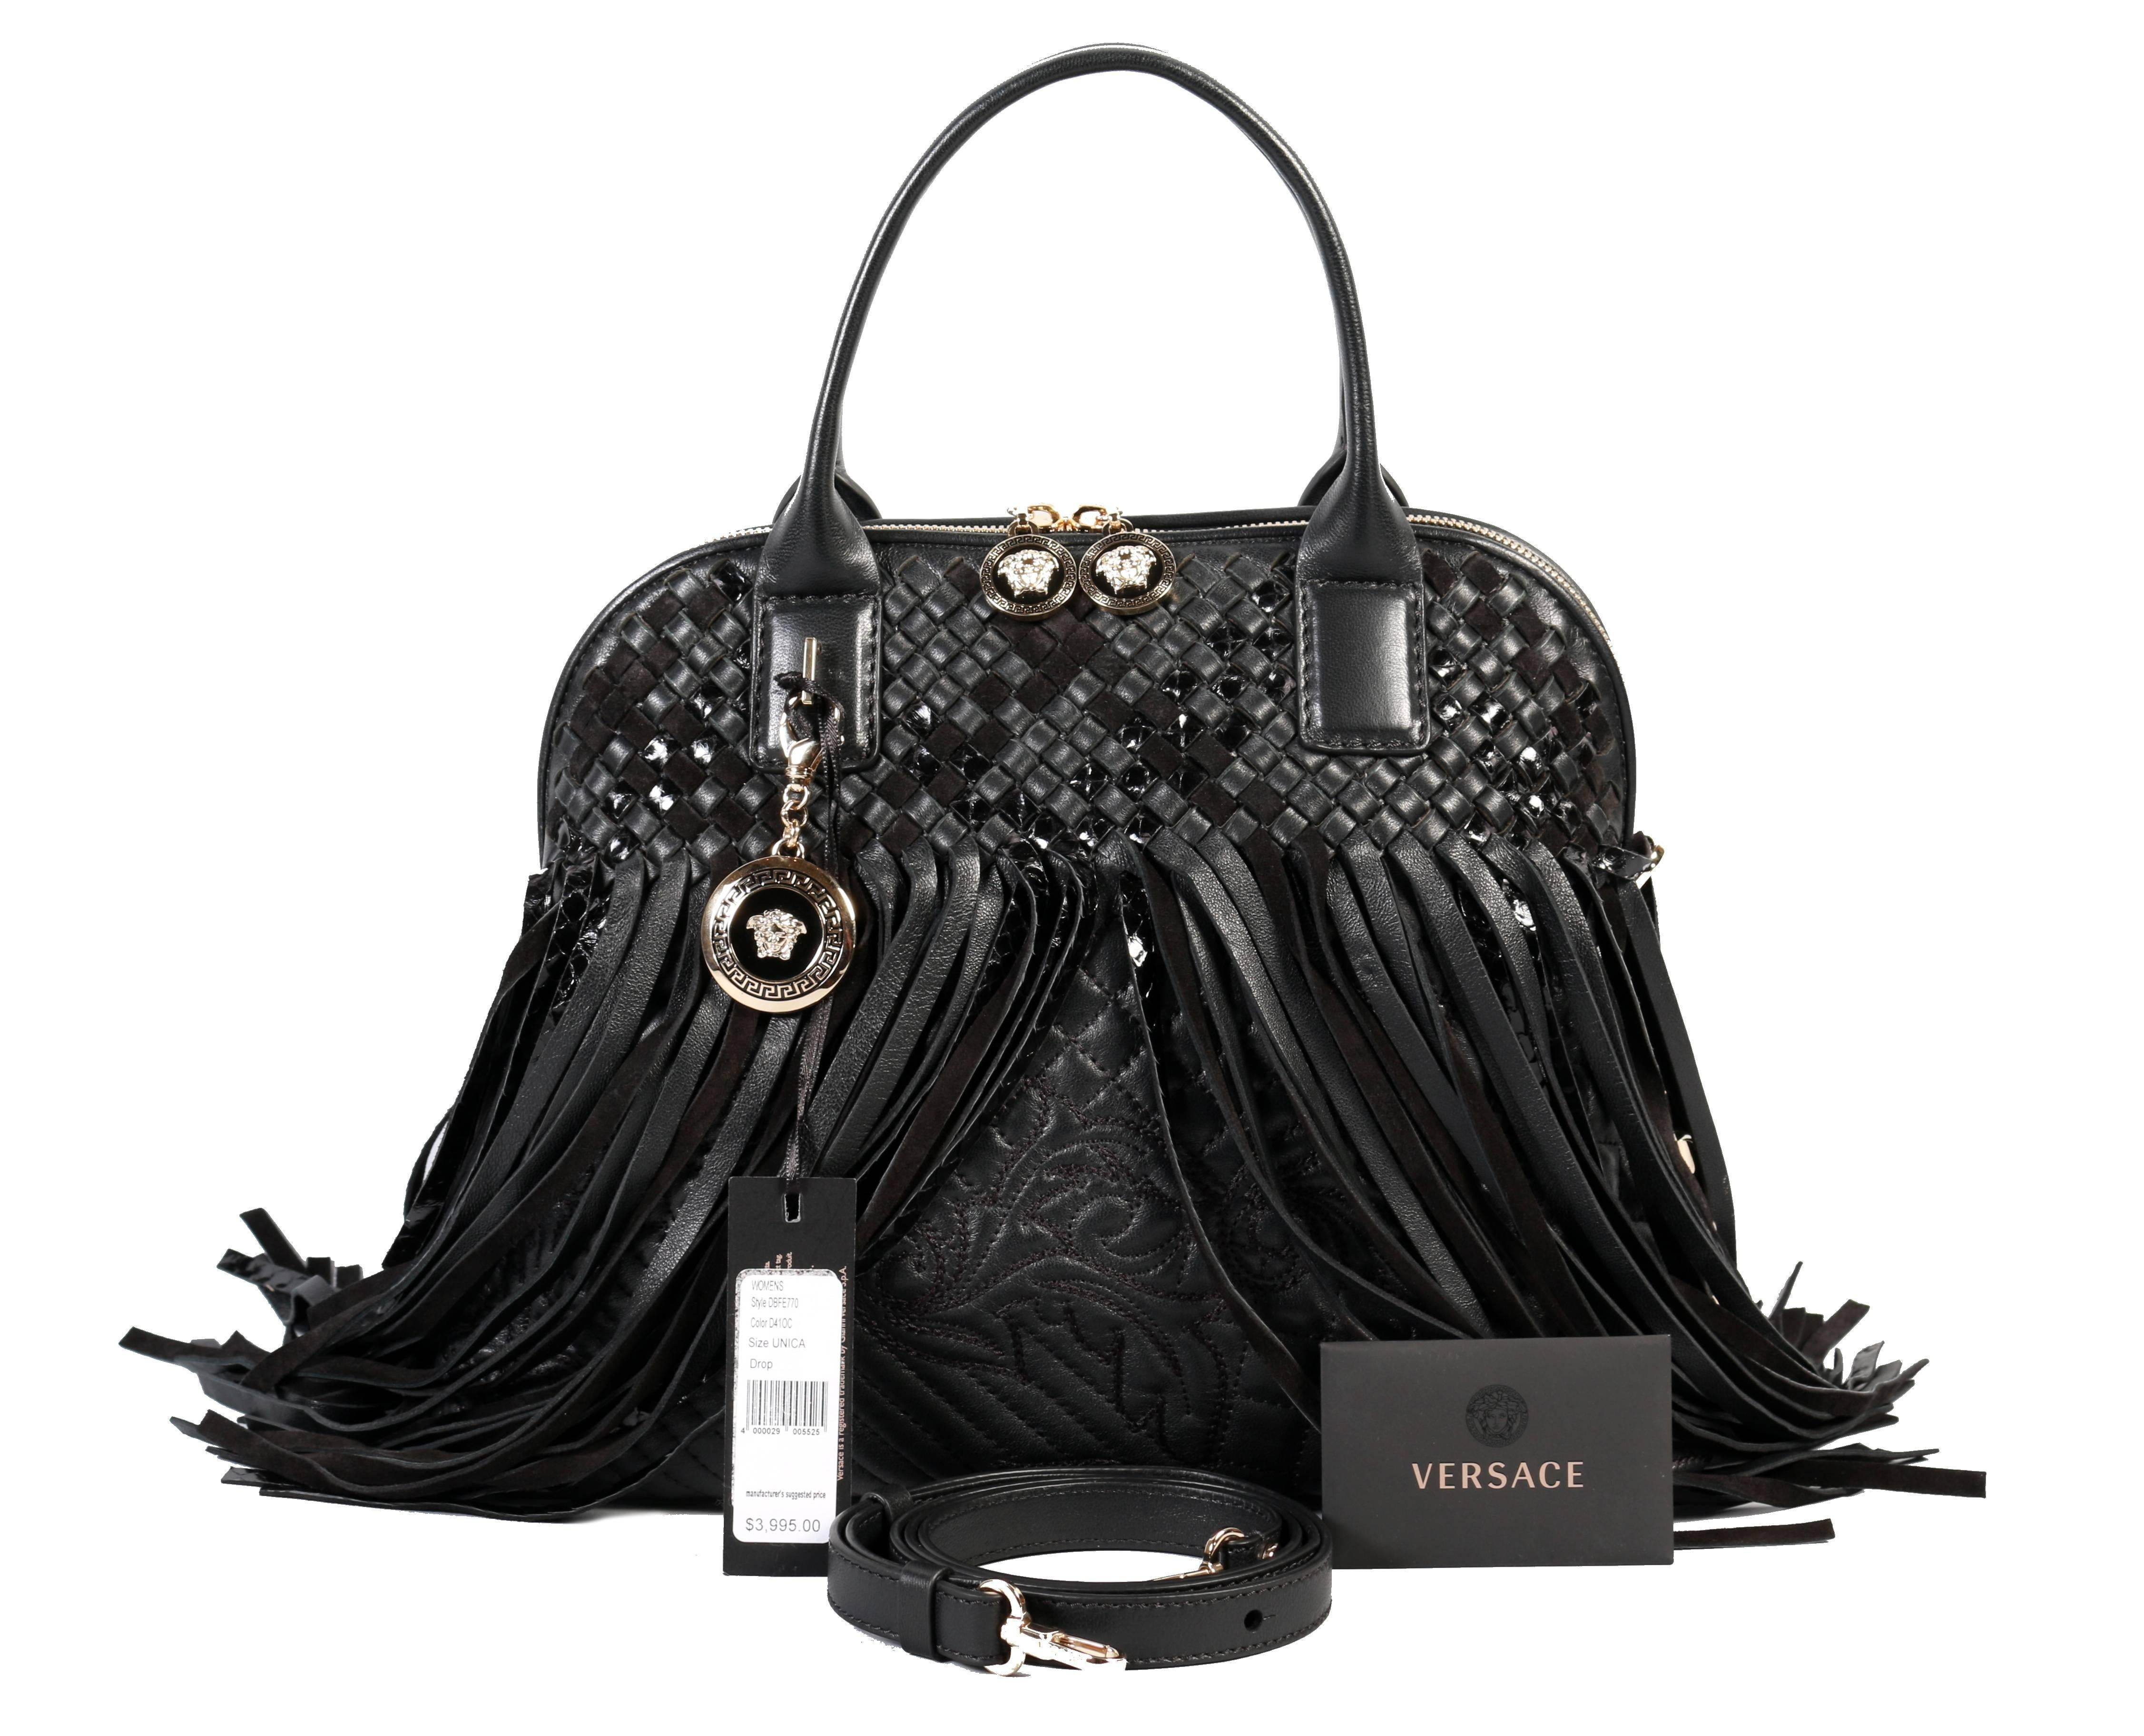 b15a6fb9ef8a7 Versace Large Black Fringed Vanitas Handbag Shoulder Bag For Sale at 1stdibs